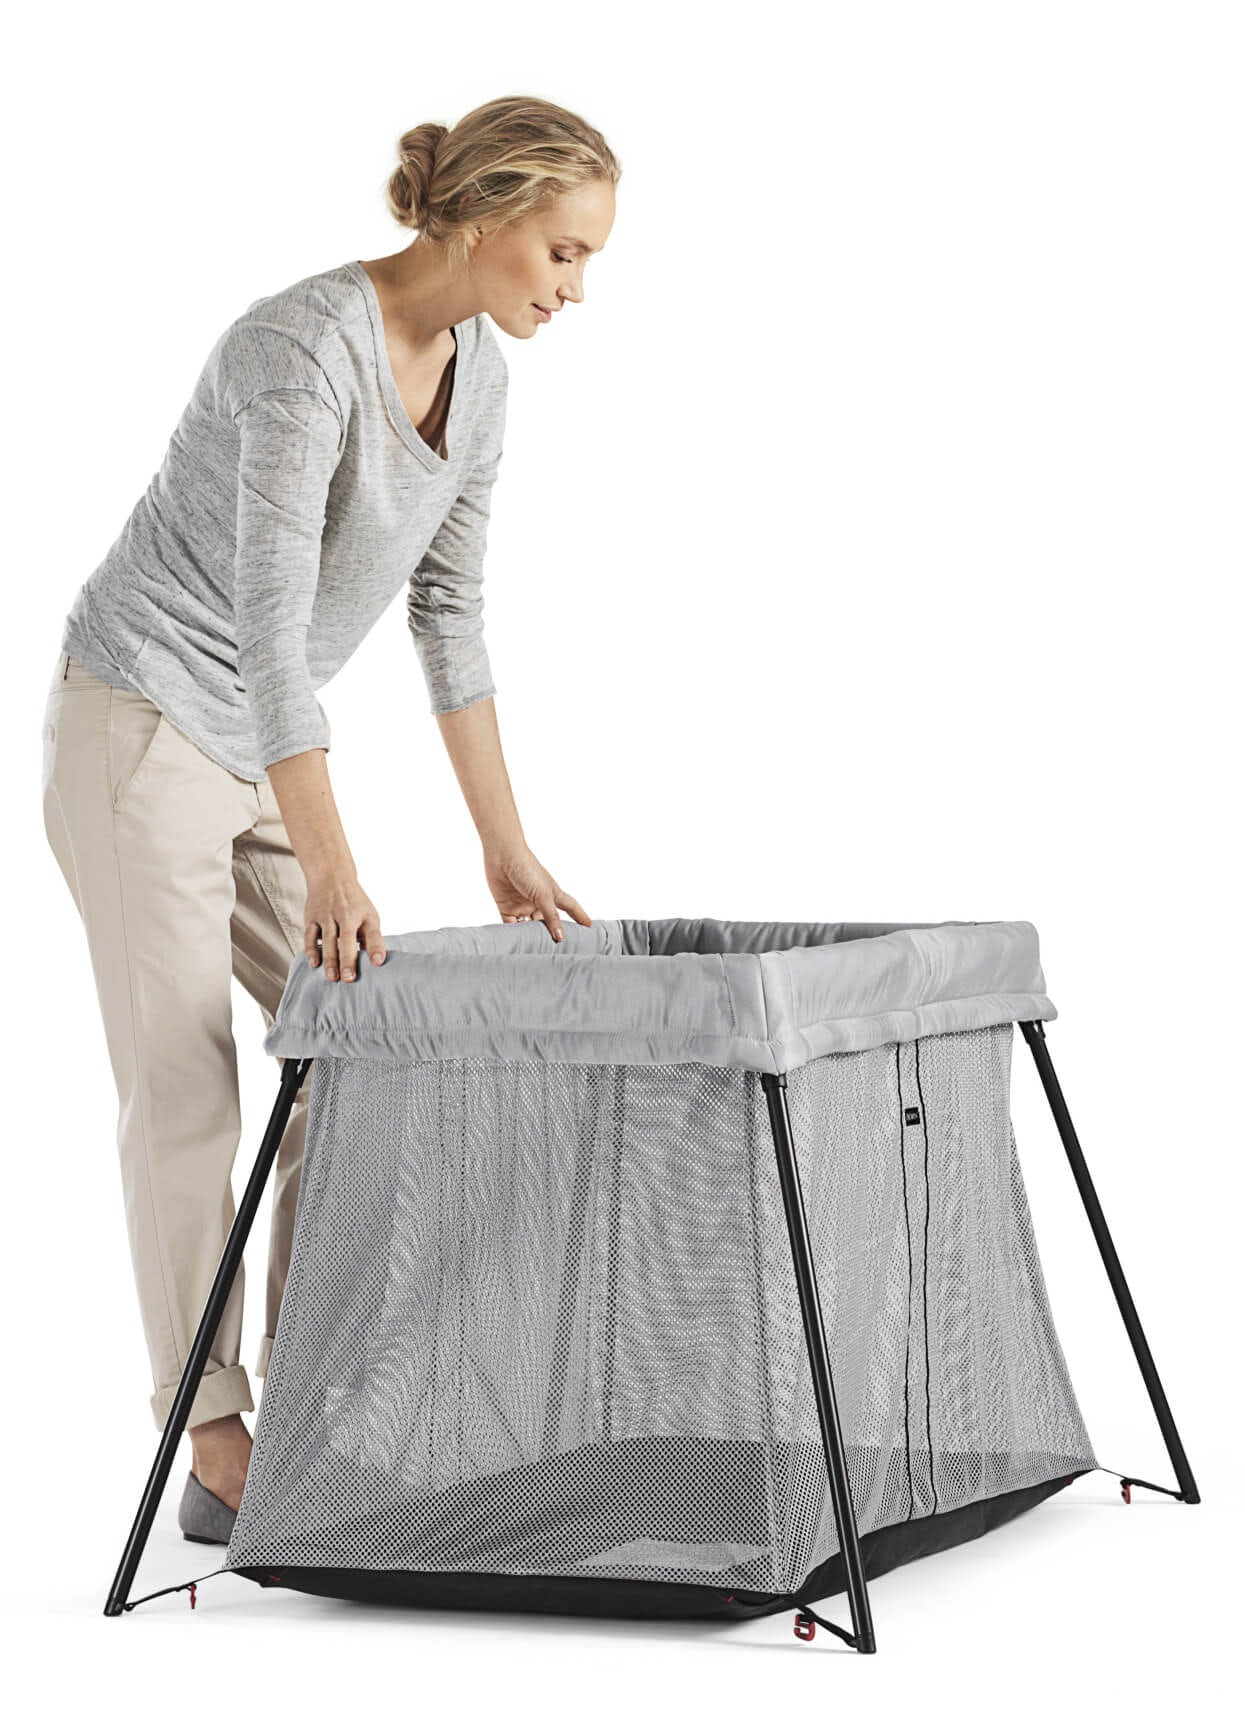 Travel Crib Light Perfect At Home Amp Away Babybj 214 Rn